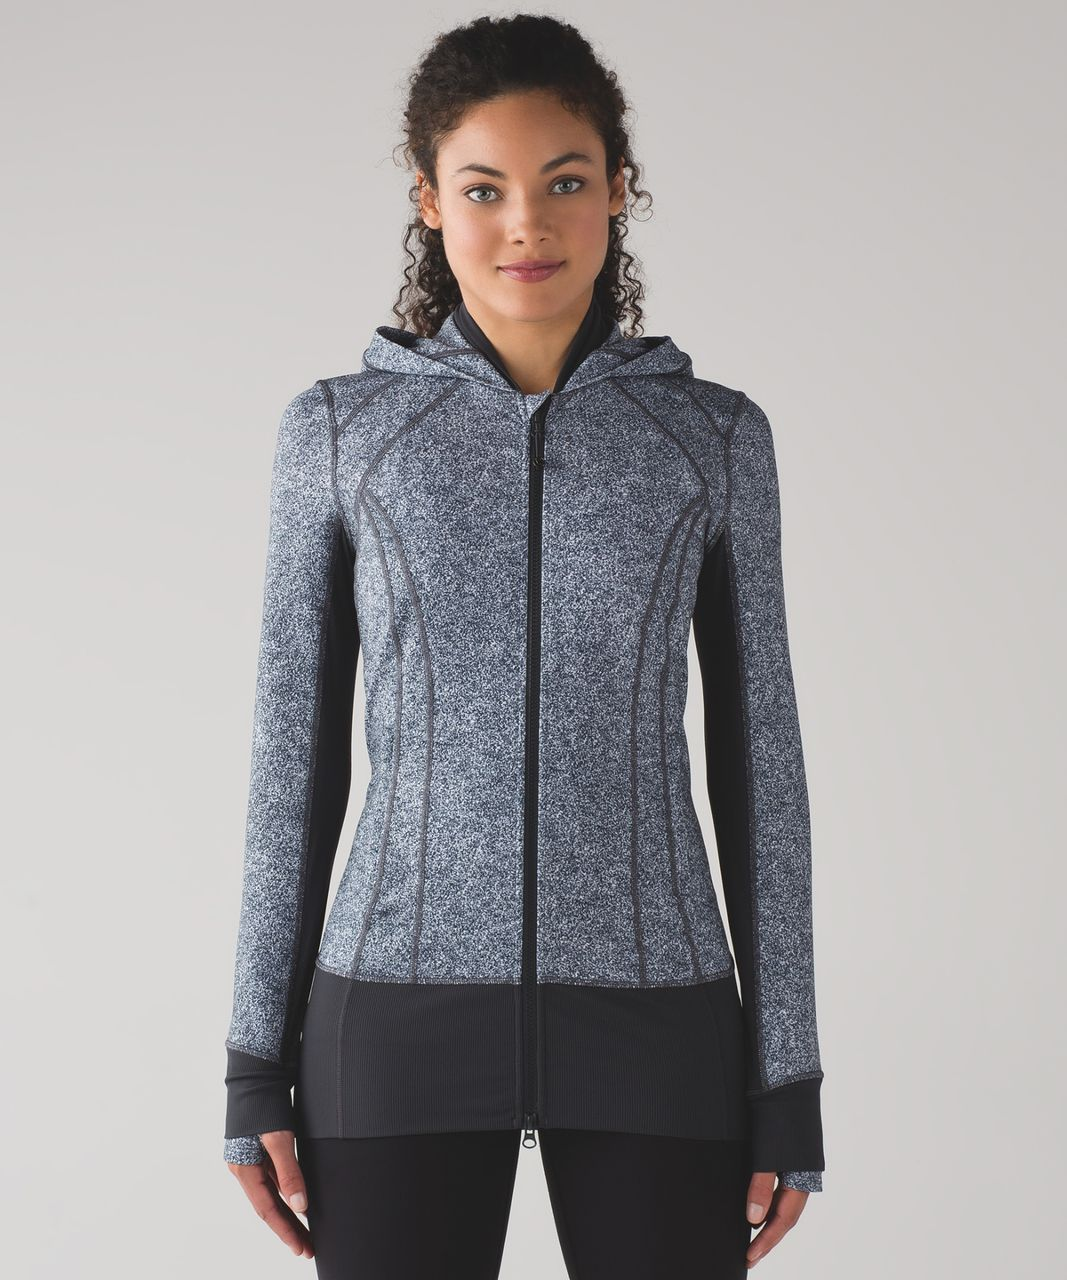 Lululemon Daily Practice Jacket - Rio Mist White Black / Deep Coal